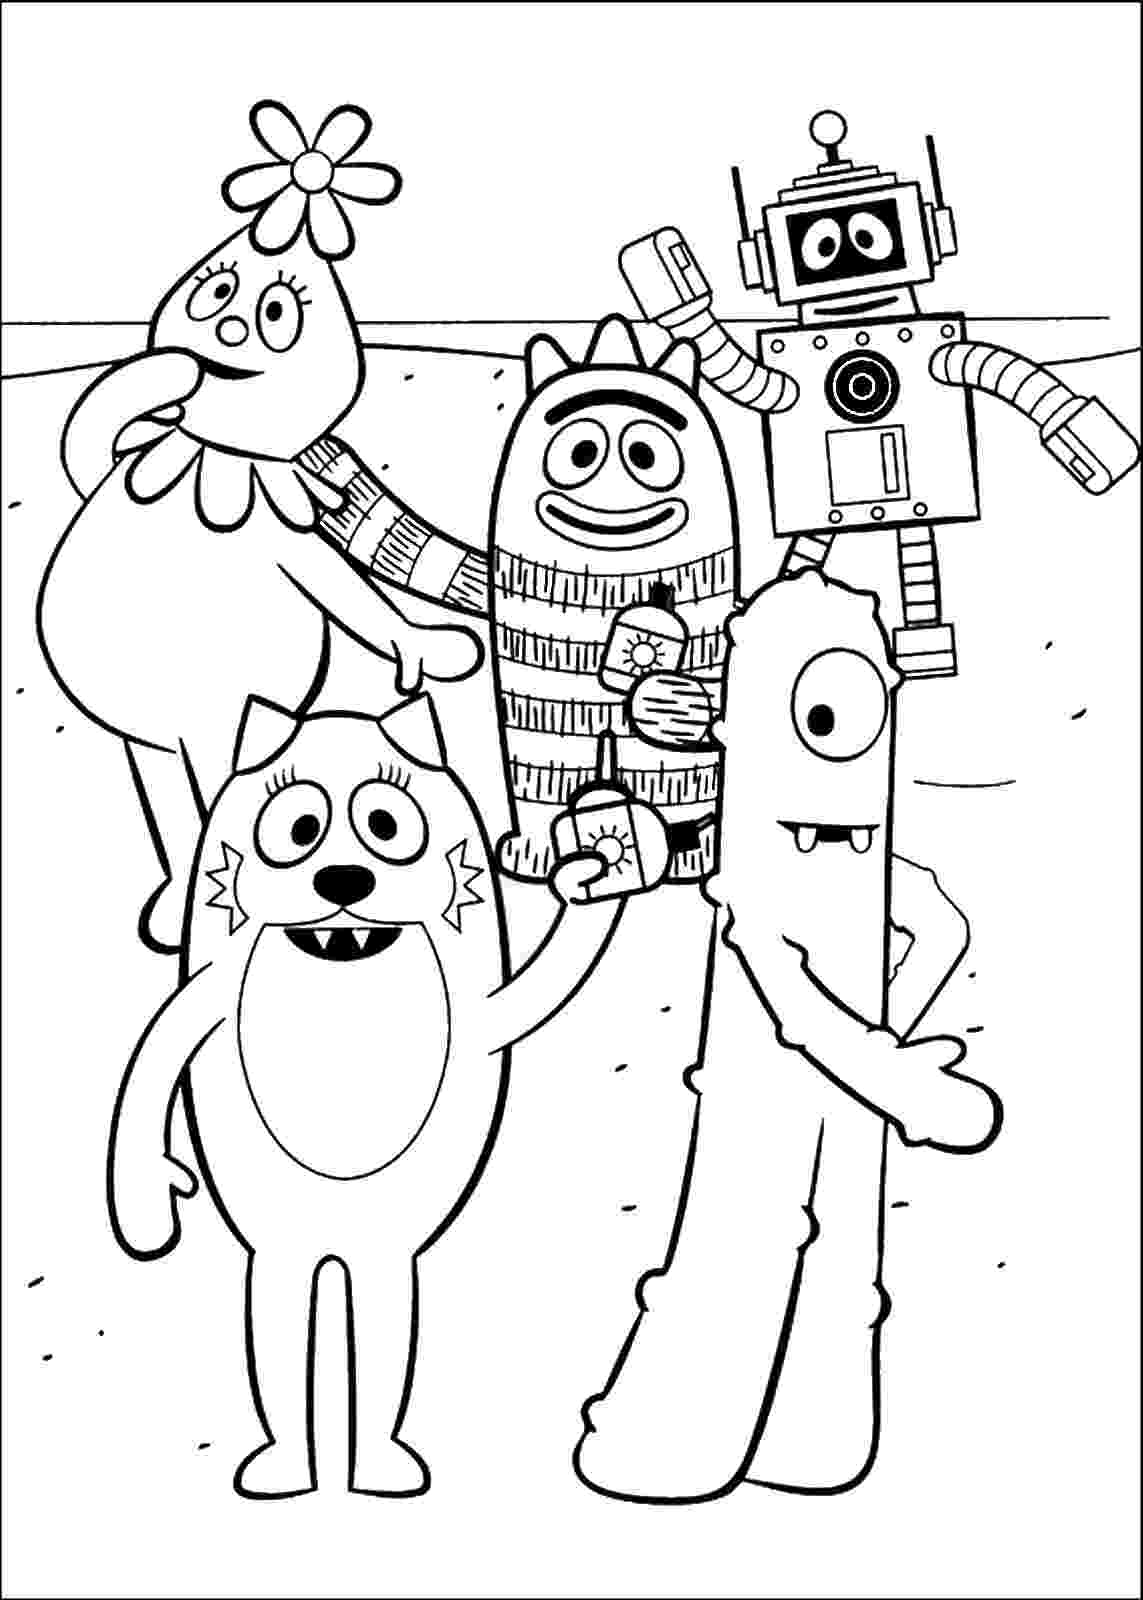 yo gabba gabba pictures to print yo gabba gabba coloring pages pictures to yo gabba gabba print